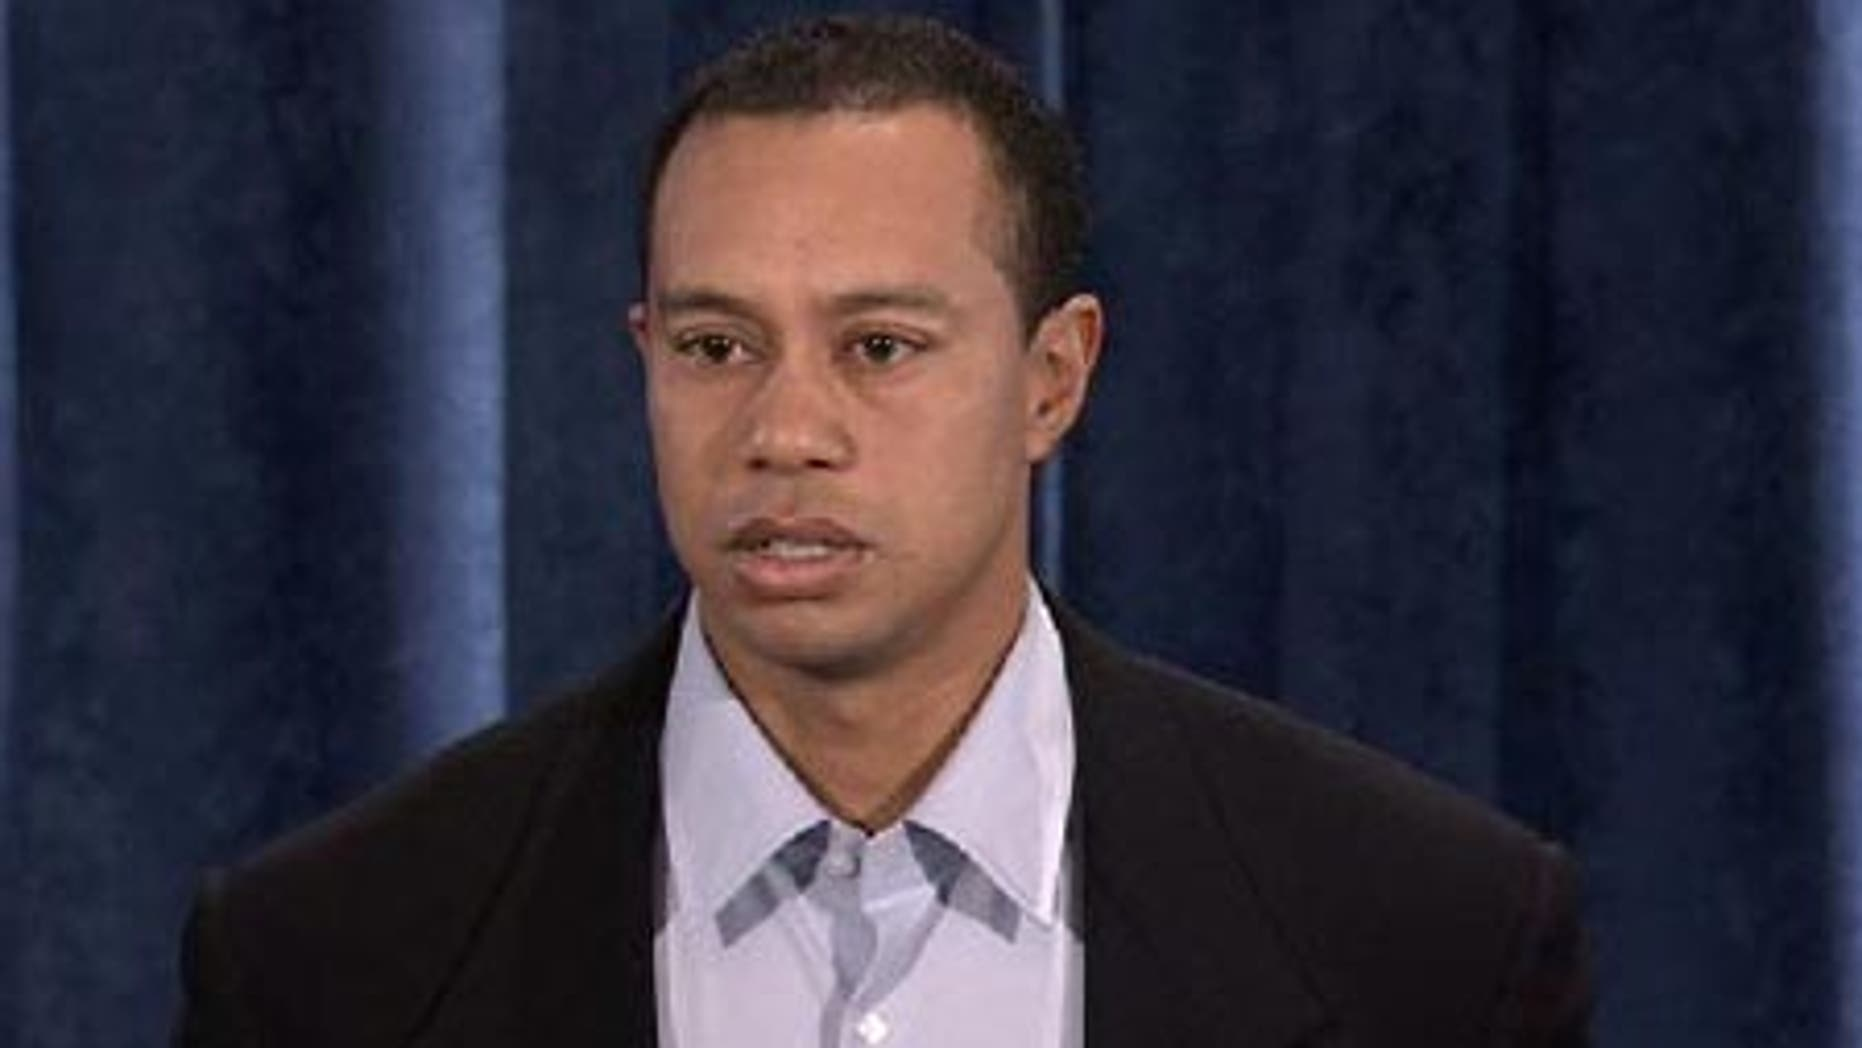 Tiger Woods gives his mea culpa before the world.